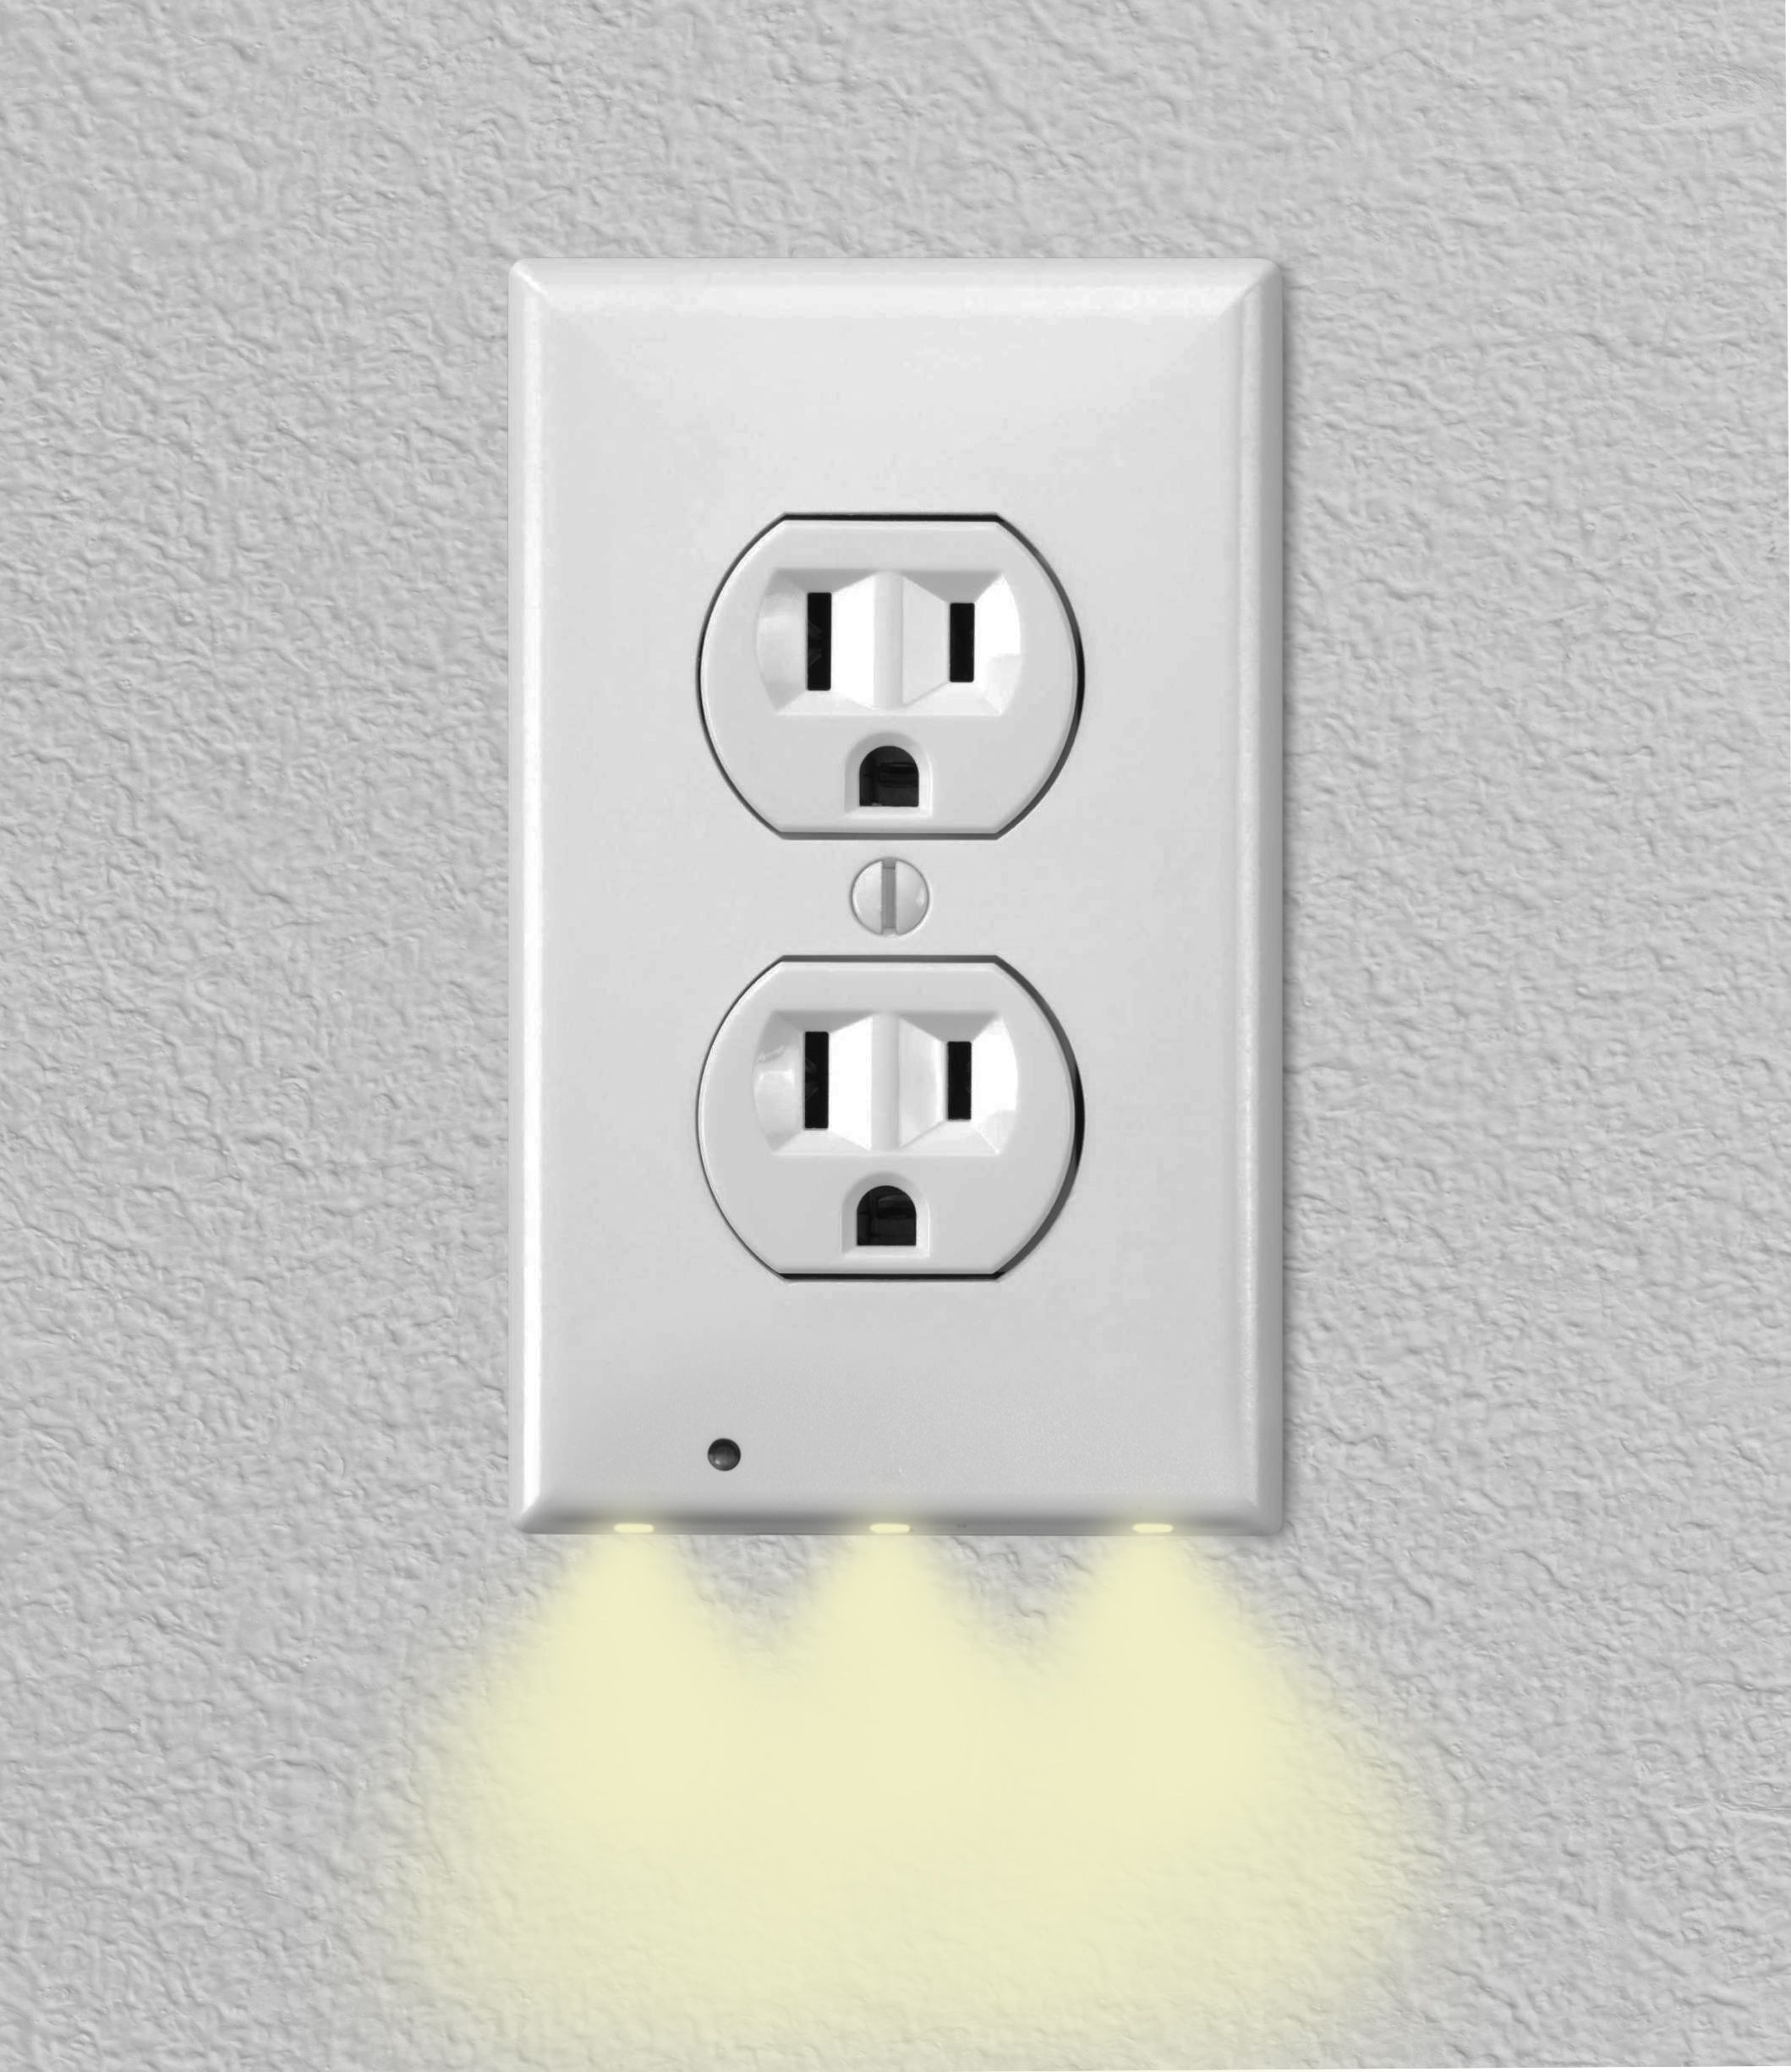 home wall outlets led night light night light on wall outlet id=91769